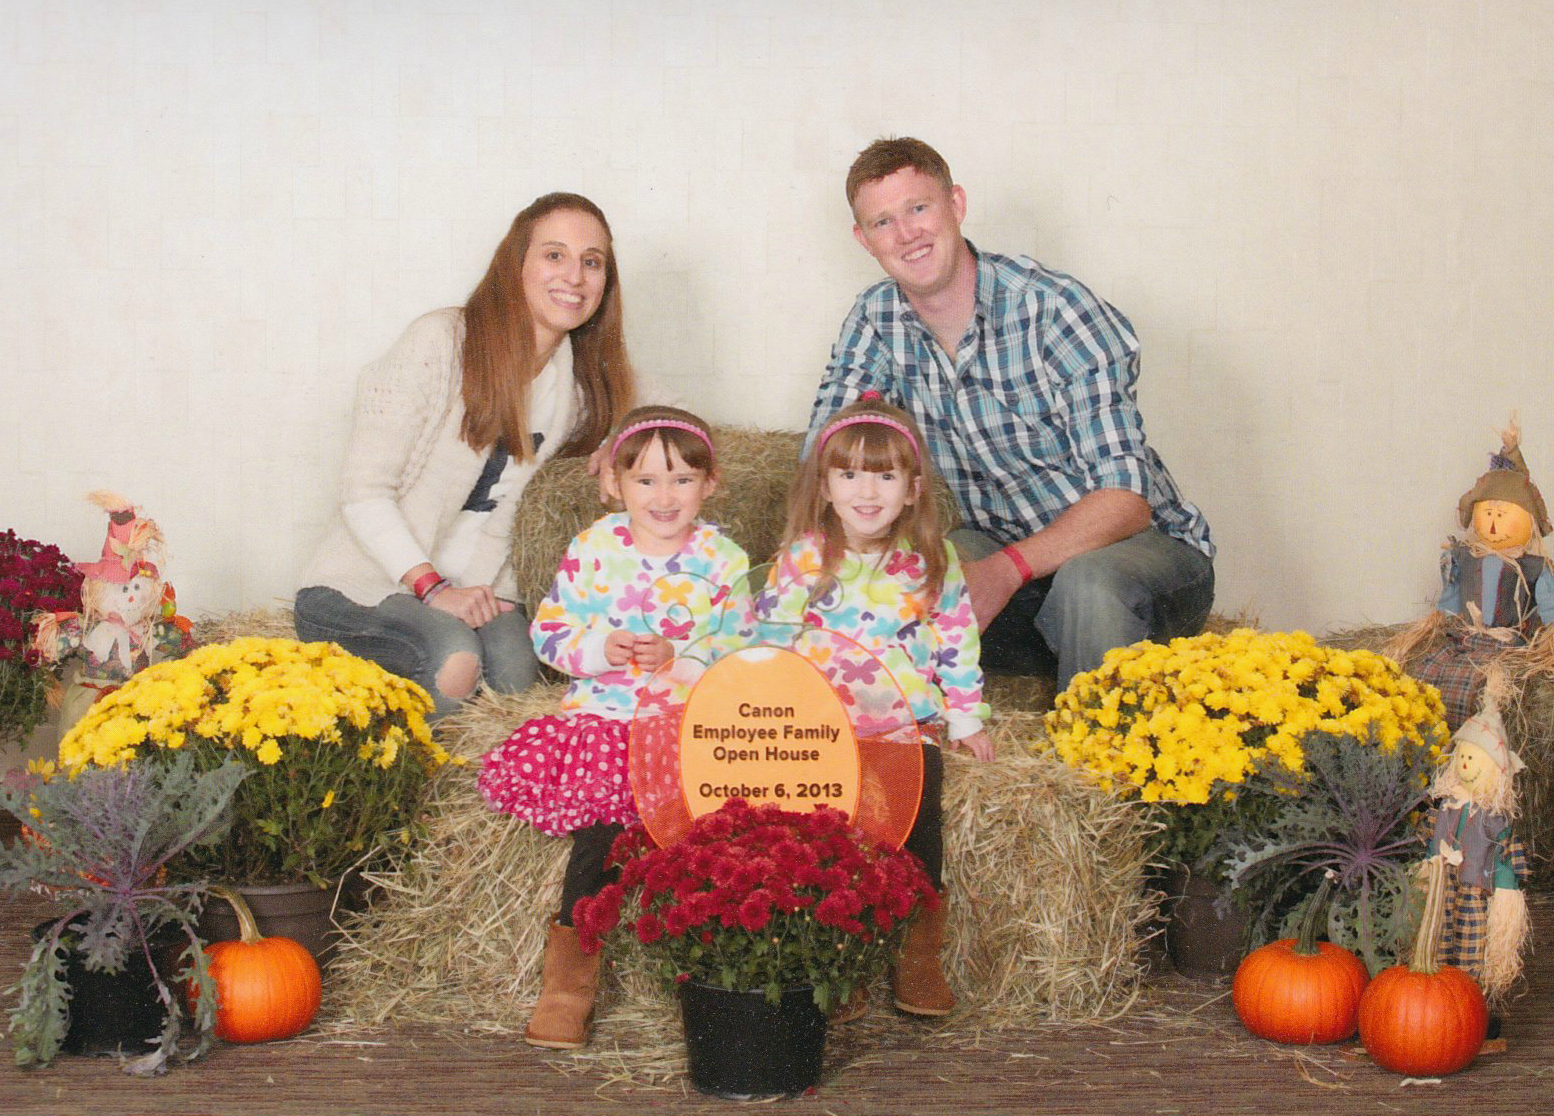 Family Portraits, This Mom's Confessions